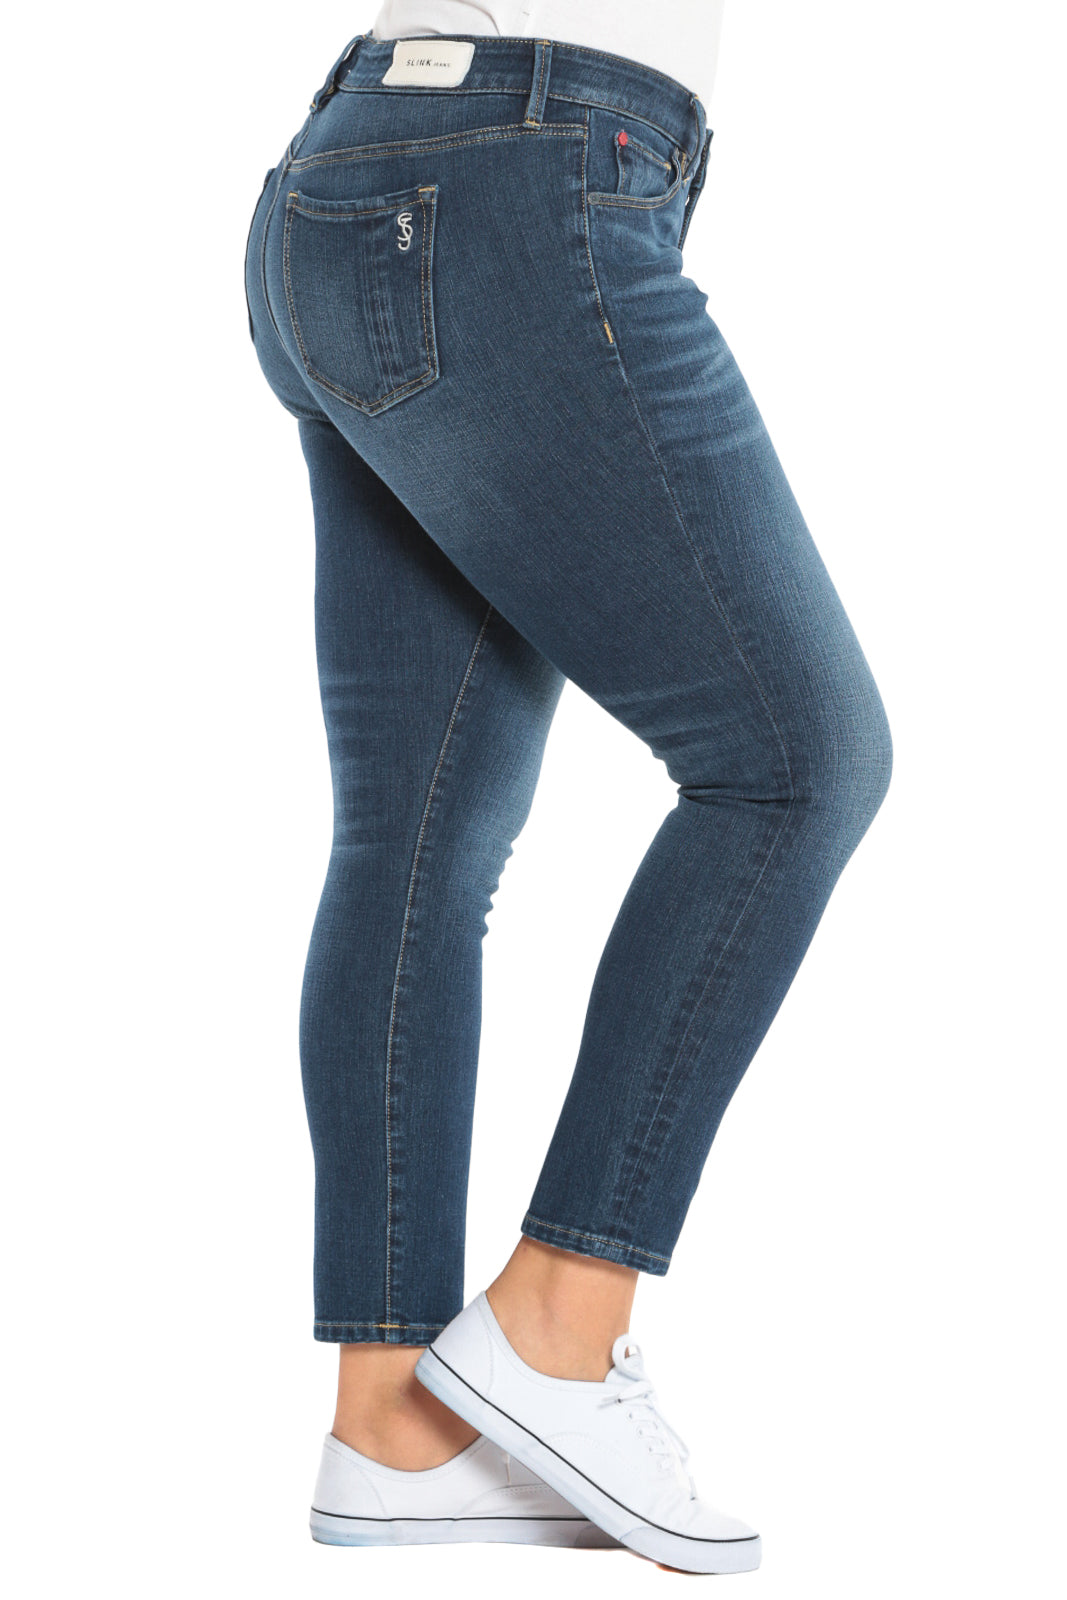 The Mid-Rise Jegging - LUNA